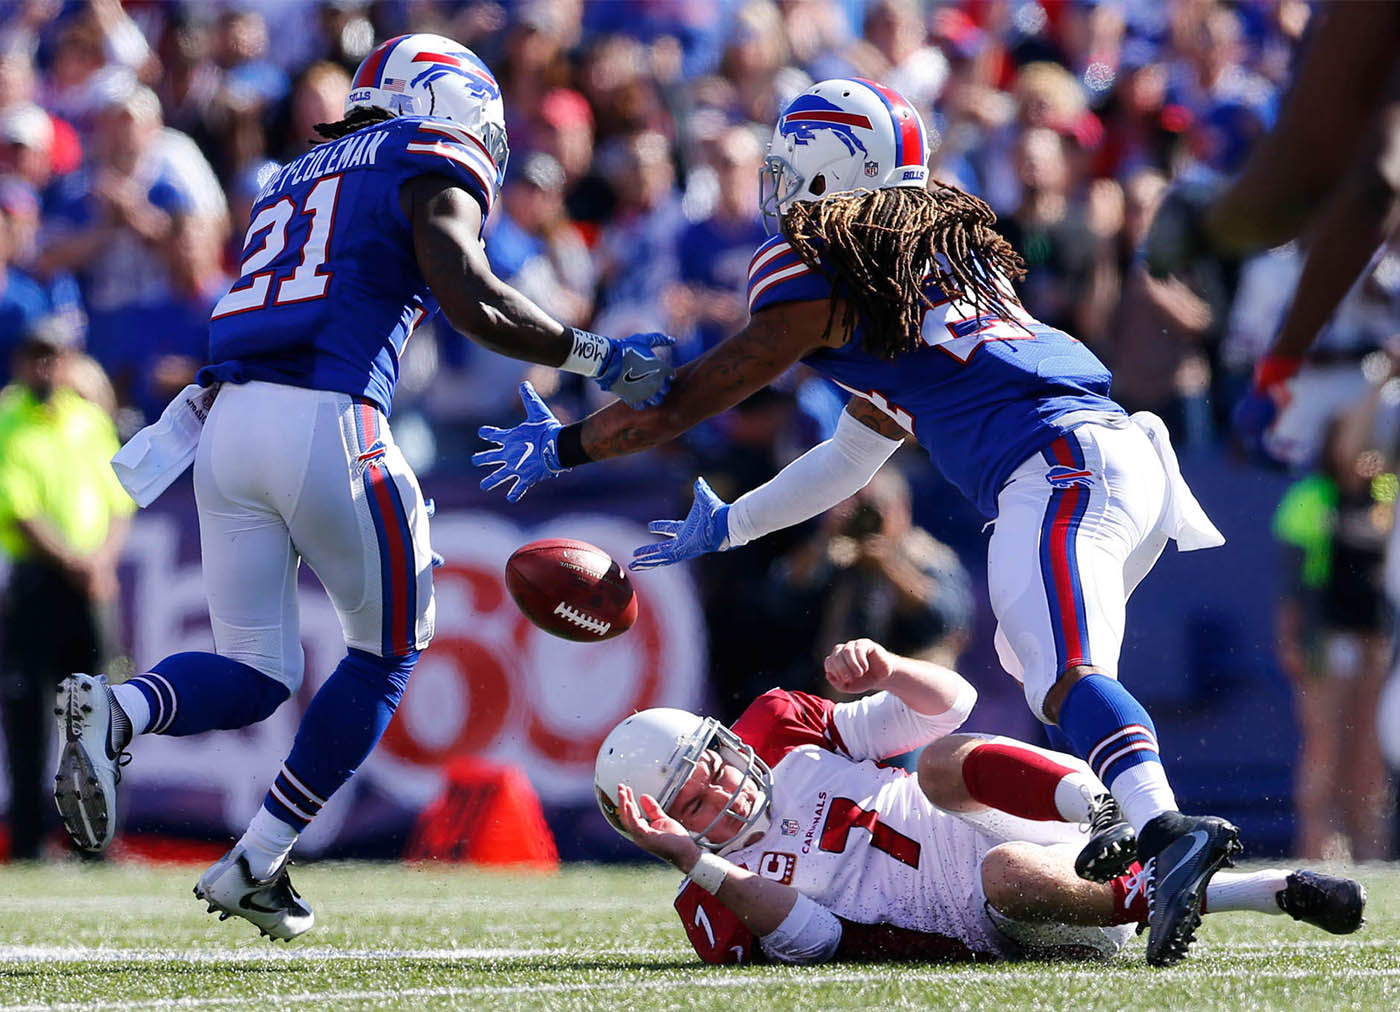 Arizona Cardinals kicker Chandler Catanzaro can't hang on to the ball after a botched snap on a field goal attempt as Buffalo Bills corners Nickell Robey-Coleman (21) and Stephon Gilmore, right, chase down the ball during the third quarter at New Era Field in Orchard Park, Sunday, Sept. 25, 2016. The ball was recovered by Buffalo's Aaron Williams, who returned it for a touchdown. (Mark Mulville/Buffalo News)